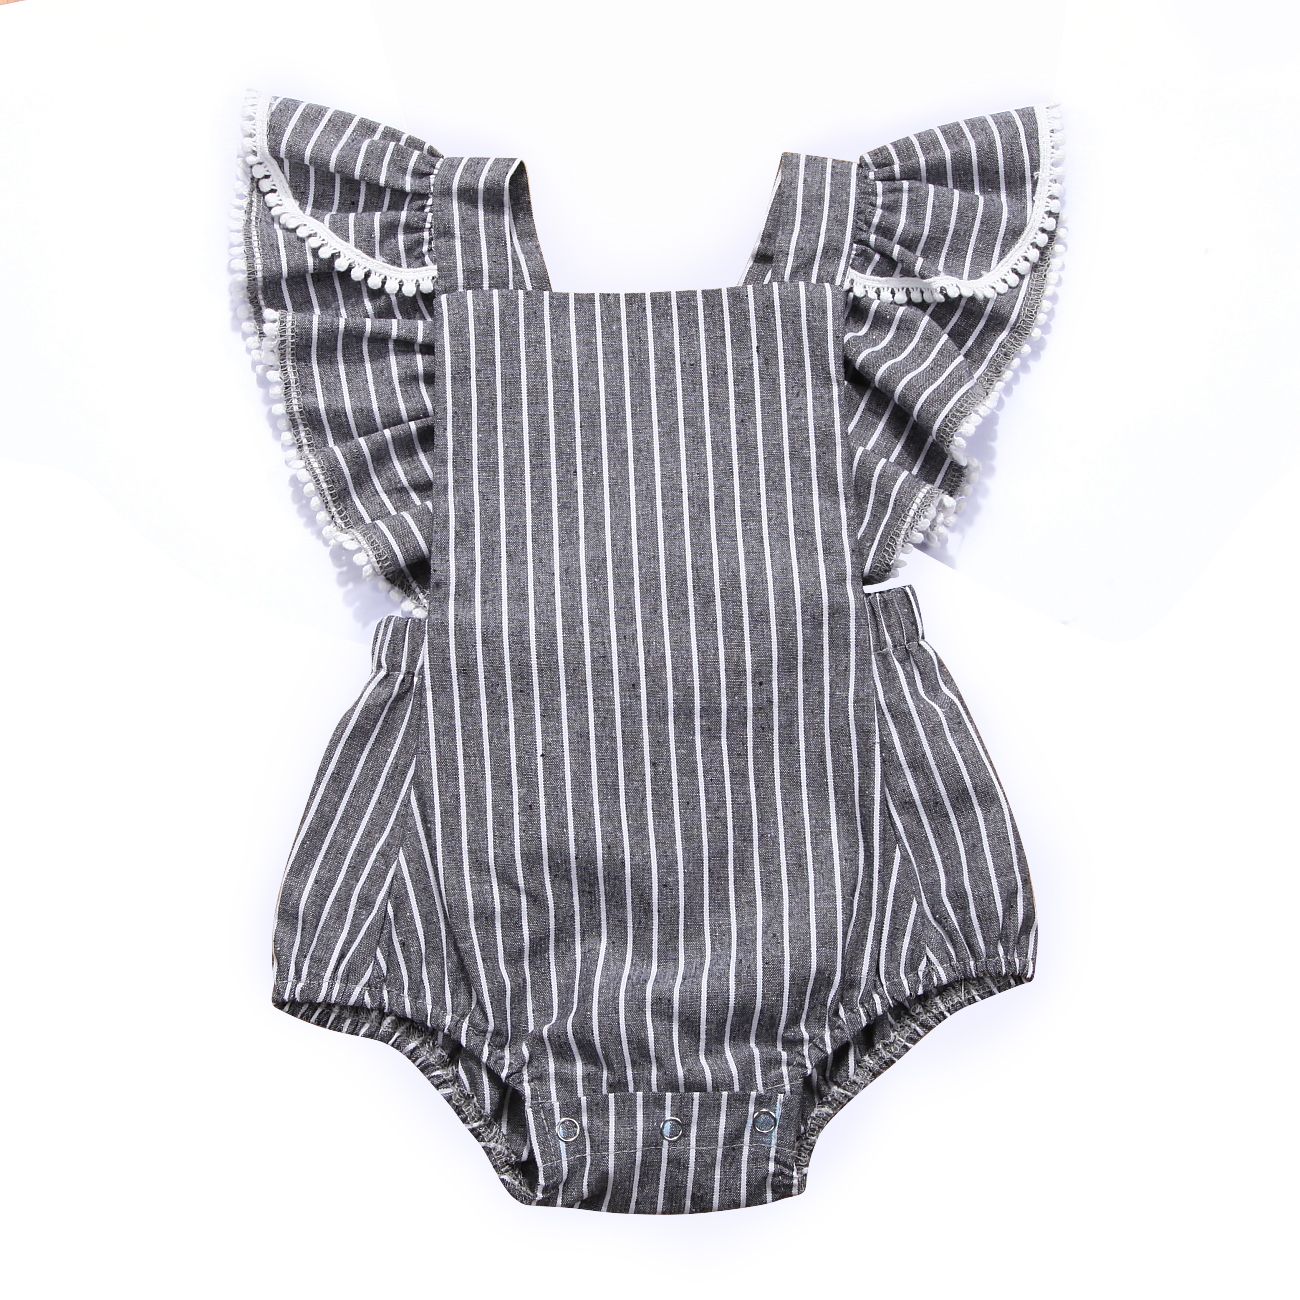 pudcoco Toddler Infant Baby Girl Stripes  Jumpsuit Bodysuit Clothes Outfits baby girl spring  summer striper  gray bpdysuitpudcoco Toddler Infant Baby Girl Stripes  Jumpsuit Bodysuit Clothes Outfits baby girl spring  summer striper  gray bpdysuit